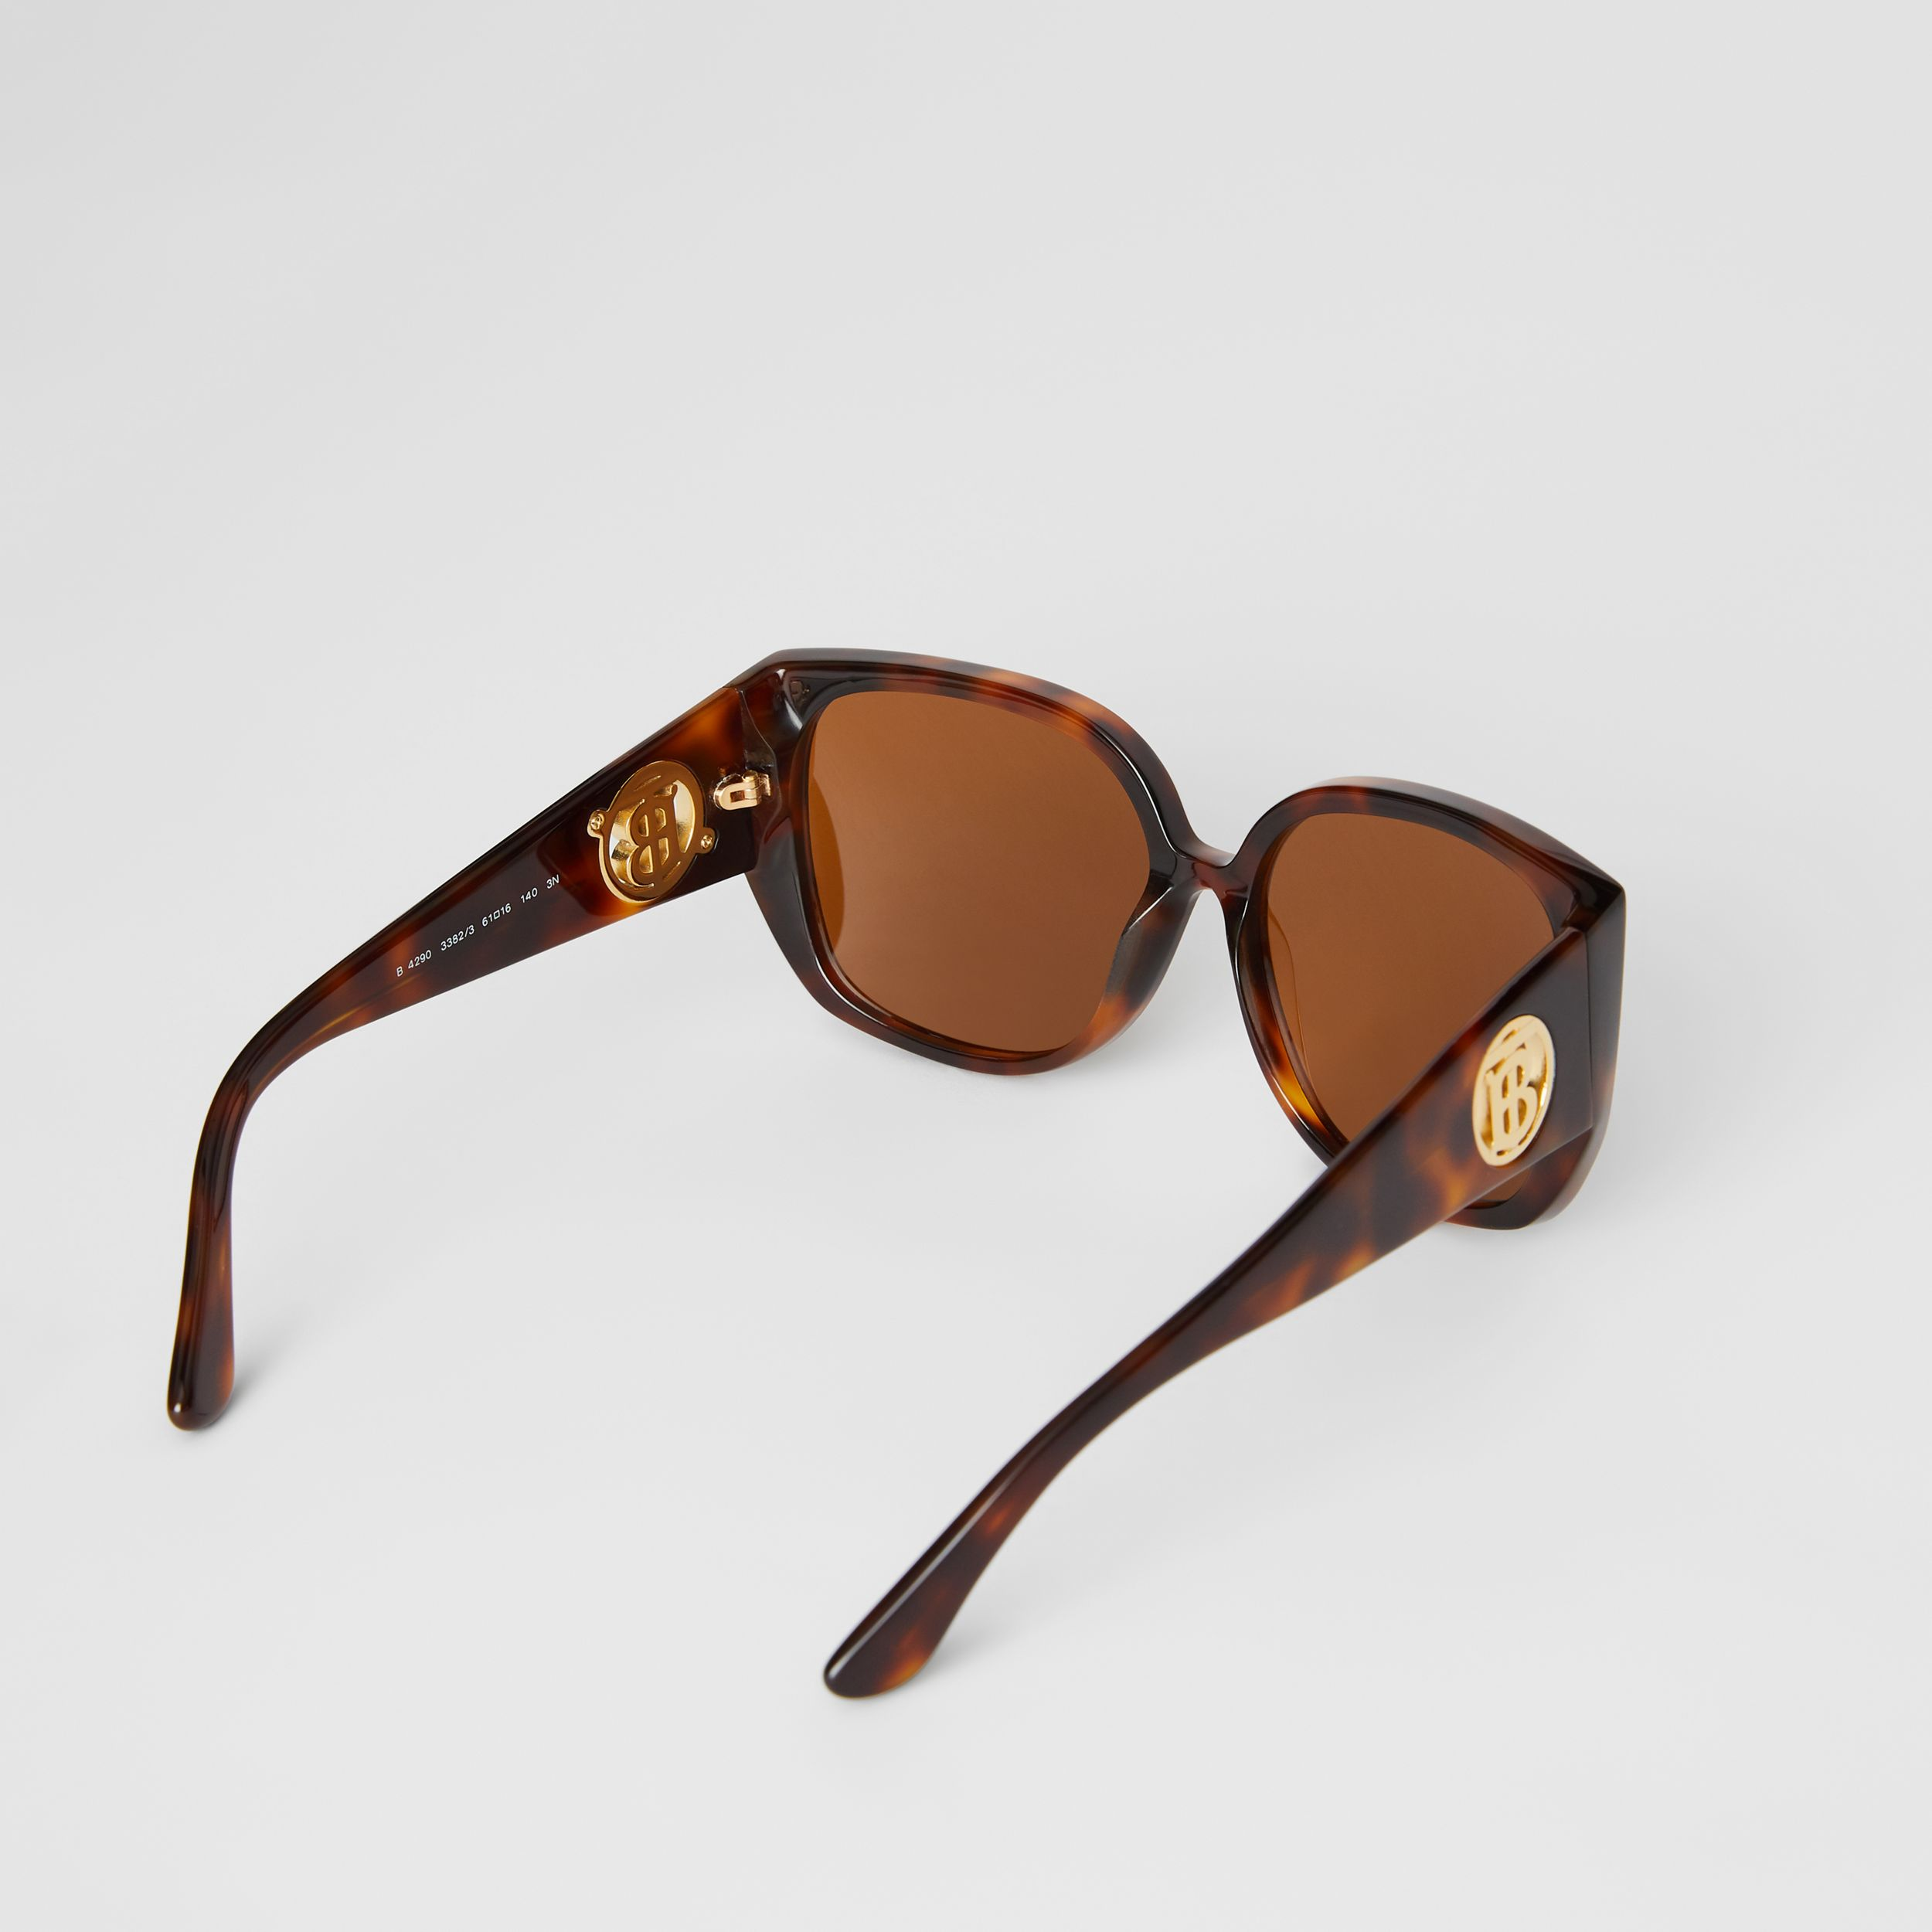 Oversized Butterfly Frame Sunglasses in Tortoiseshell - Women | Burberry United Kingdom - 4